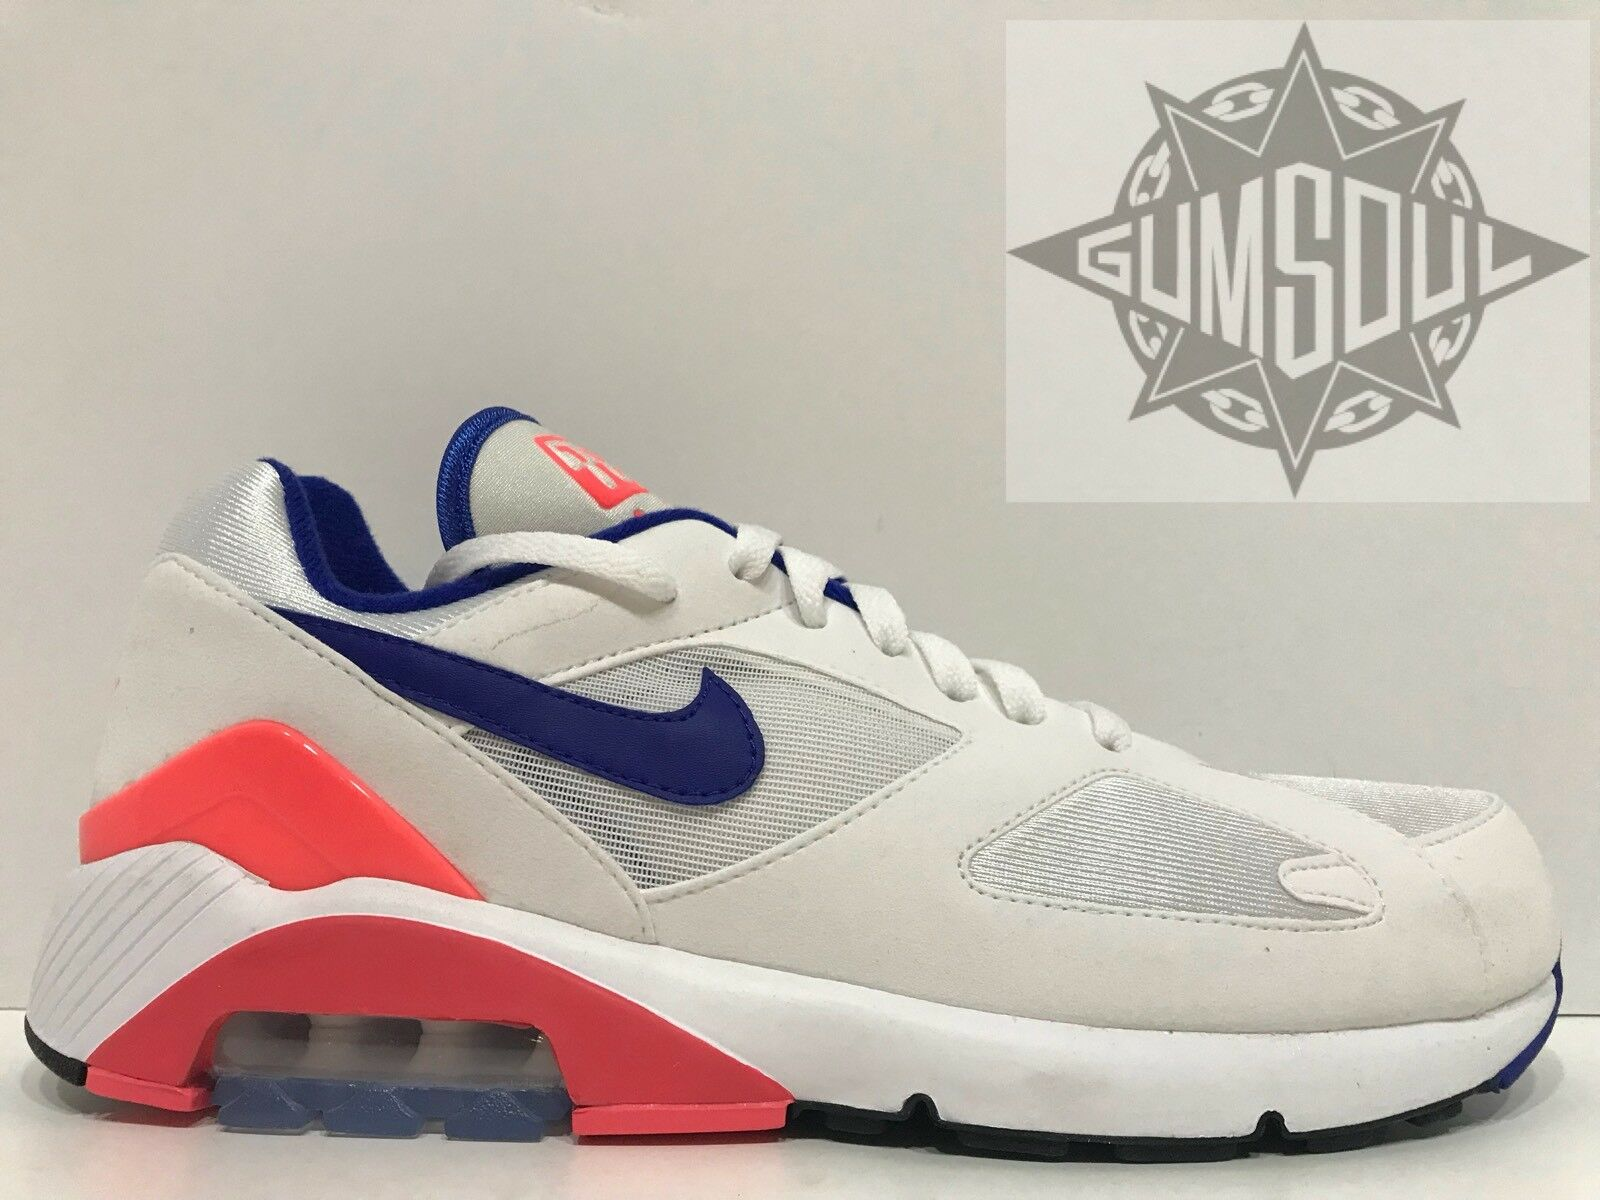 2018 NIKE AIR MAX 180 OG WHITE 615287 ULTRAMARINE SOLAR RED BLUE 615287 WHITE 100 sz 9.5 817edb